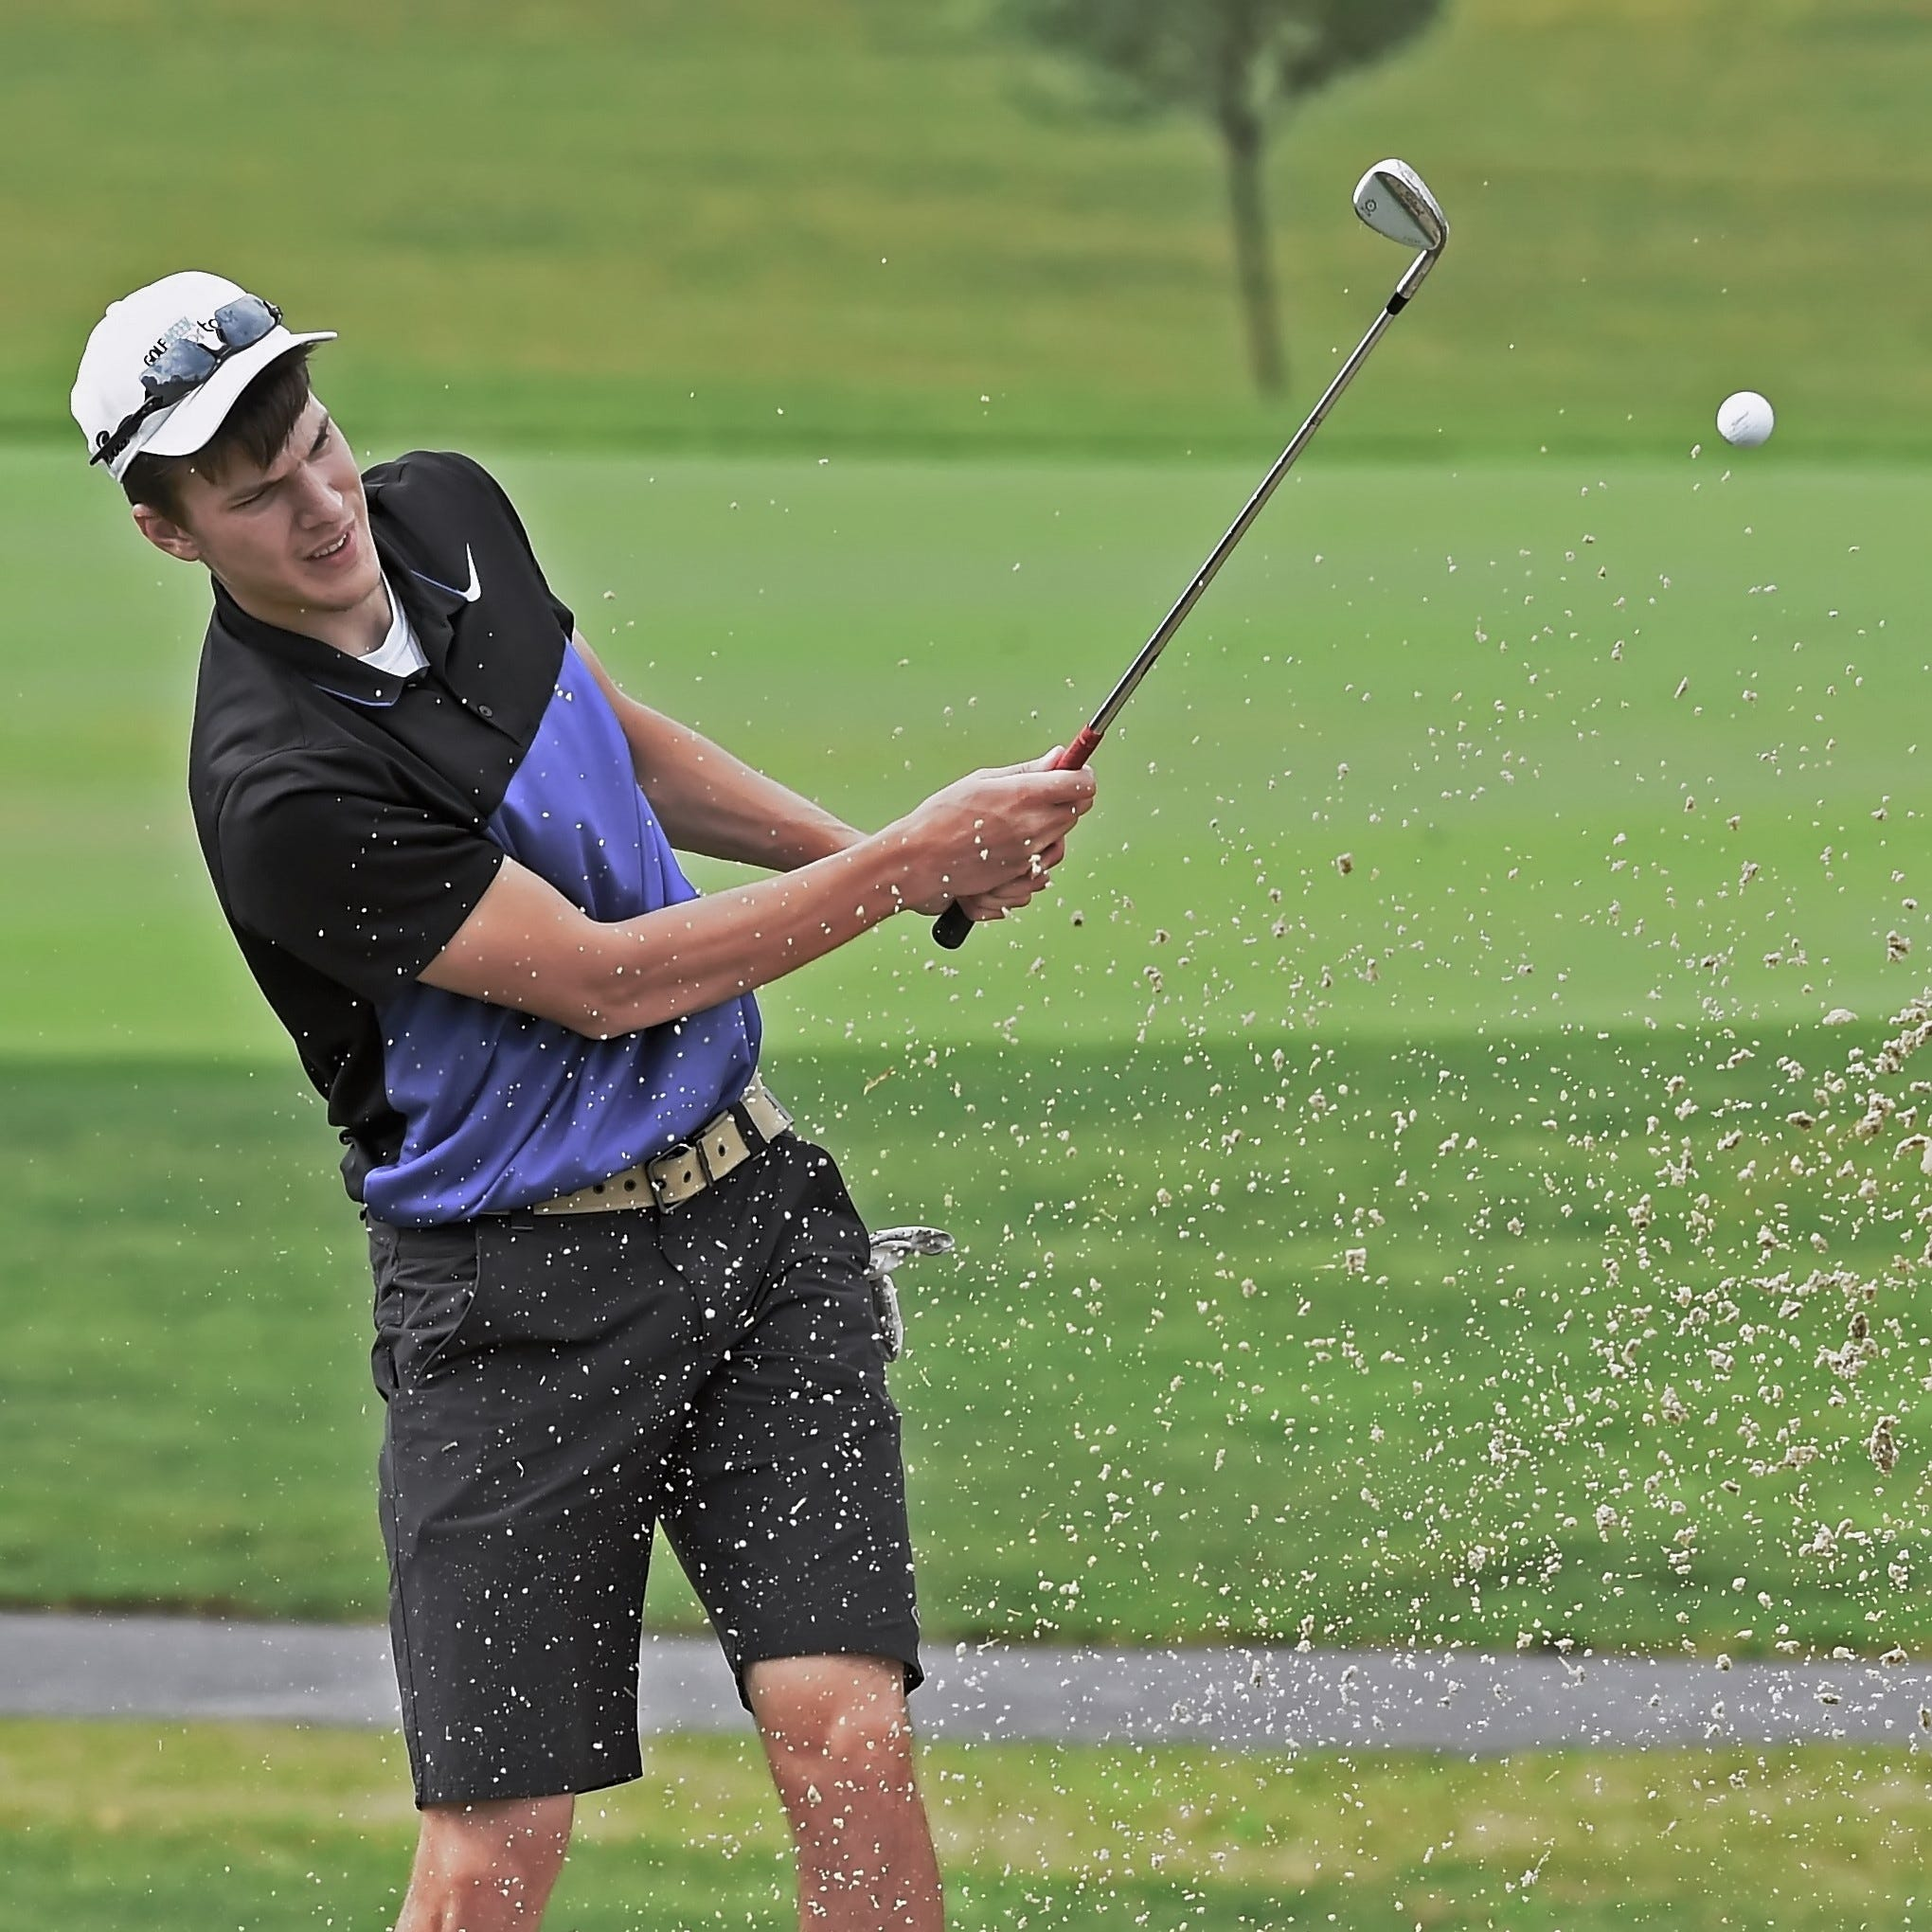 Matt Krause edges his former teacher at Men's City match play